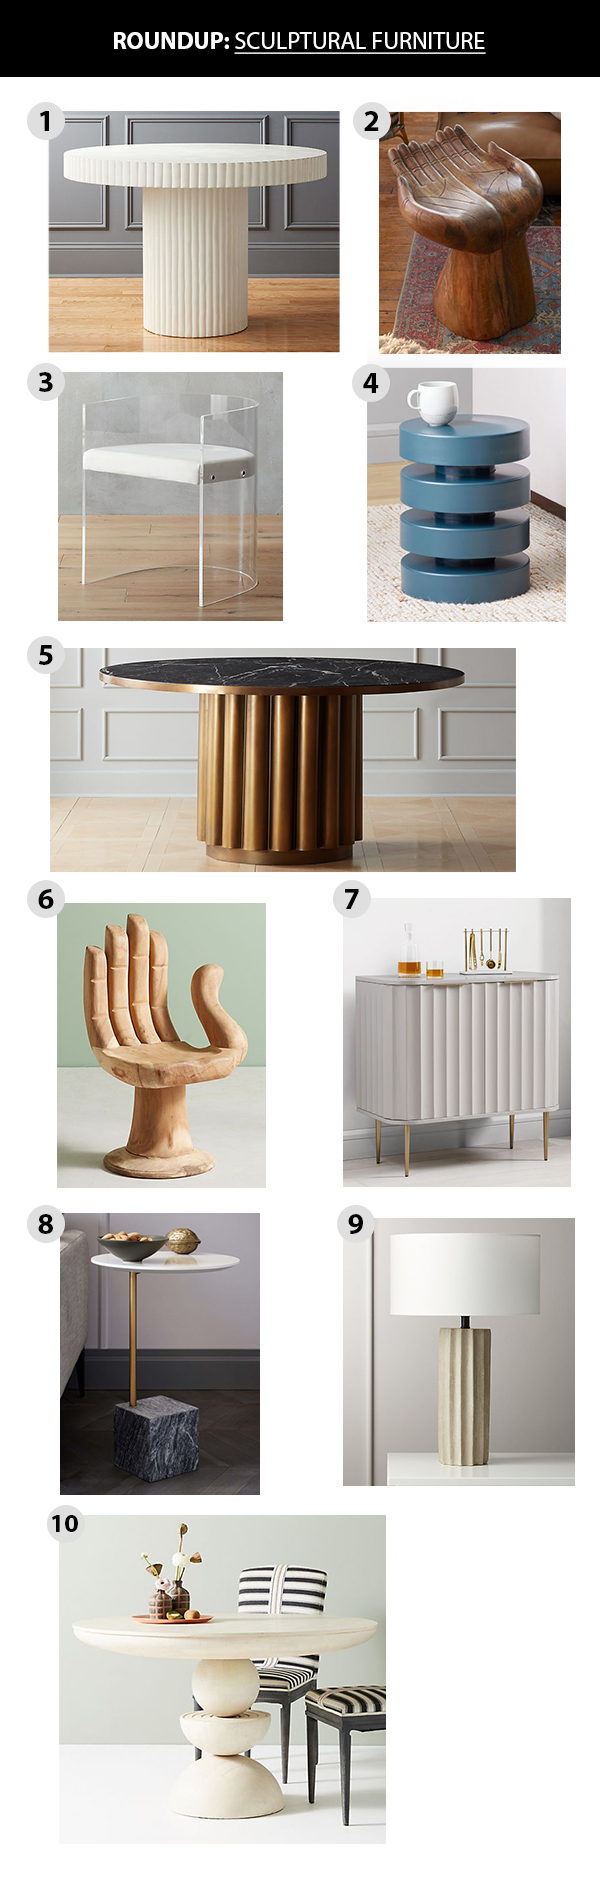 Roundup_SculpturalFurniture.jpg